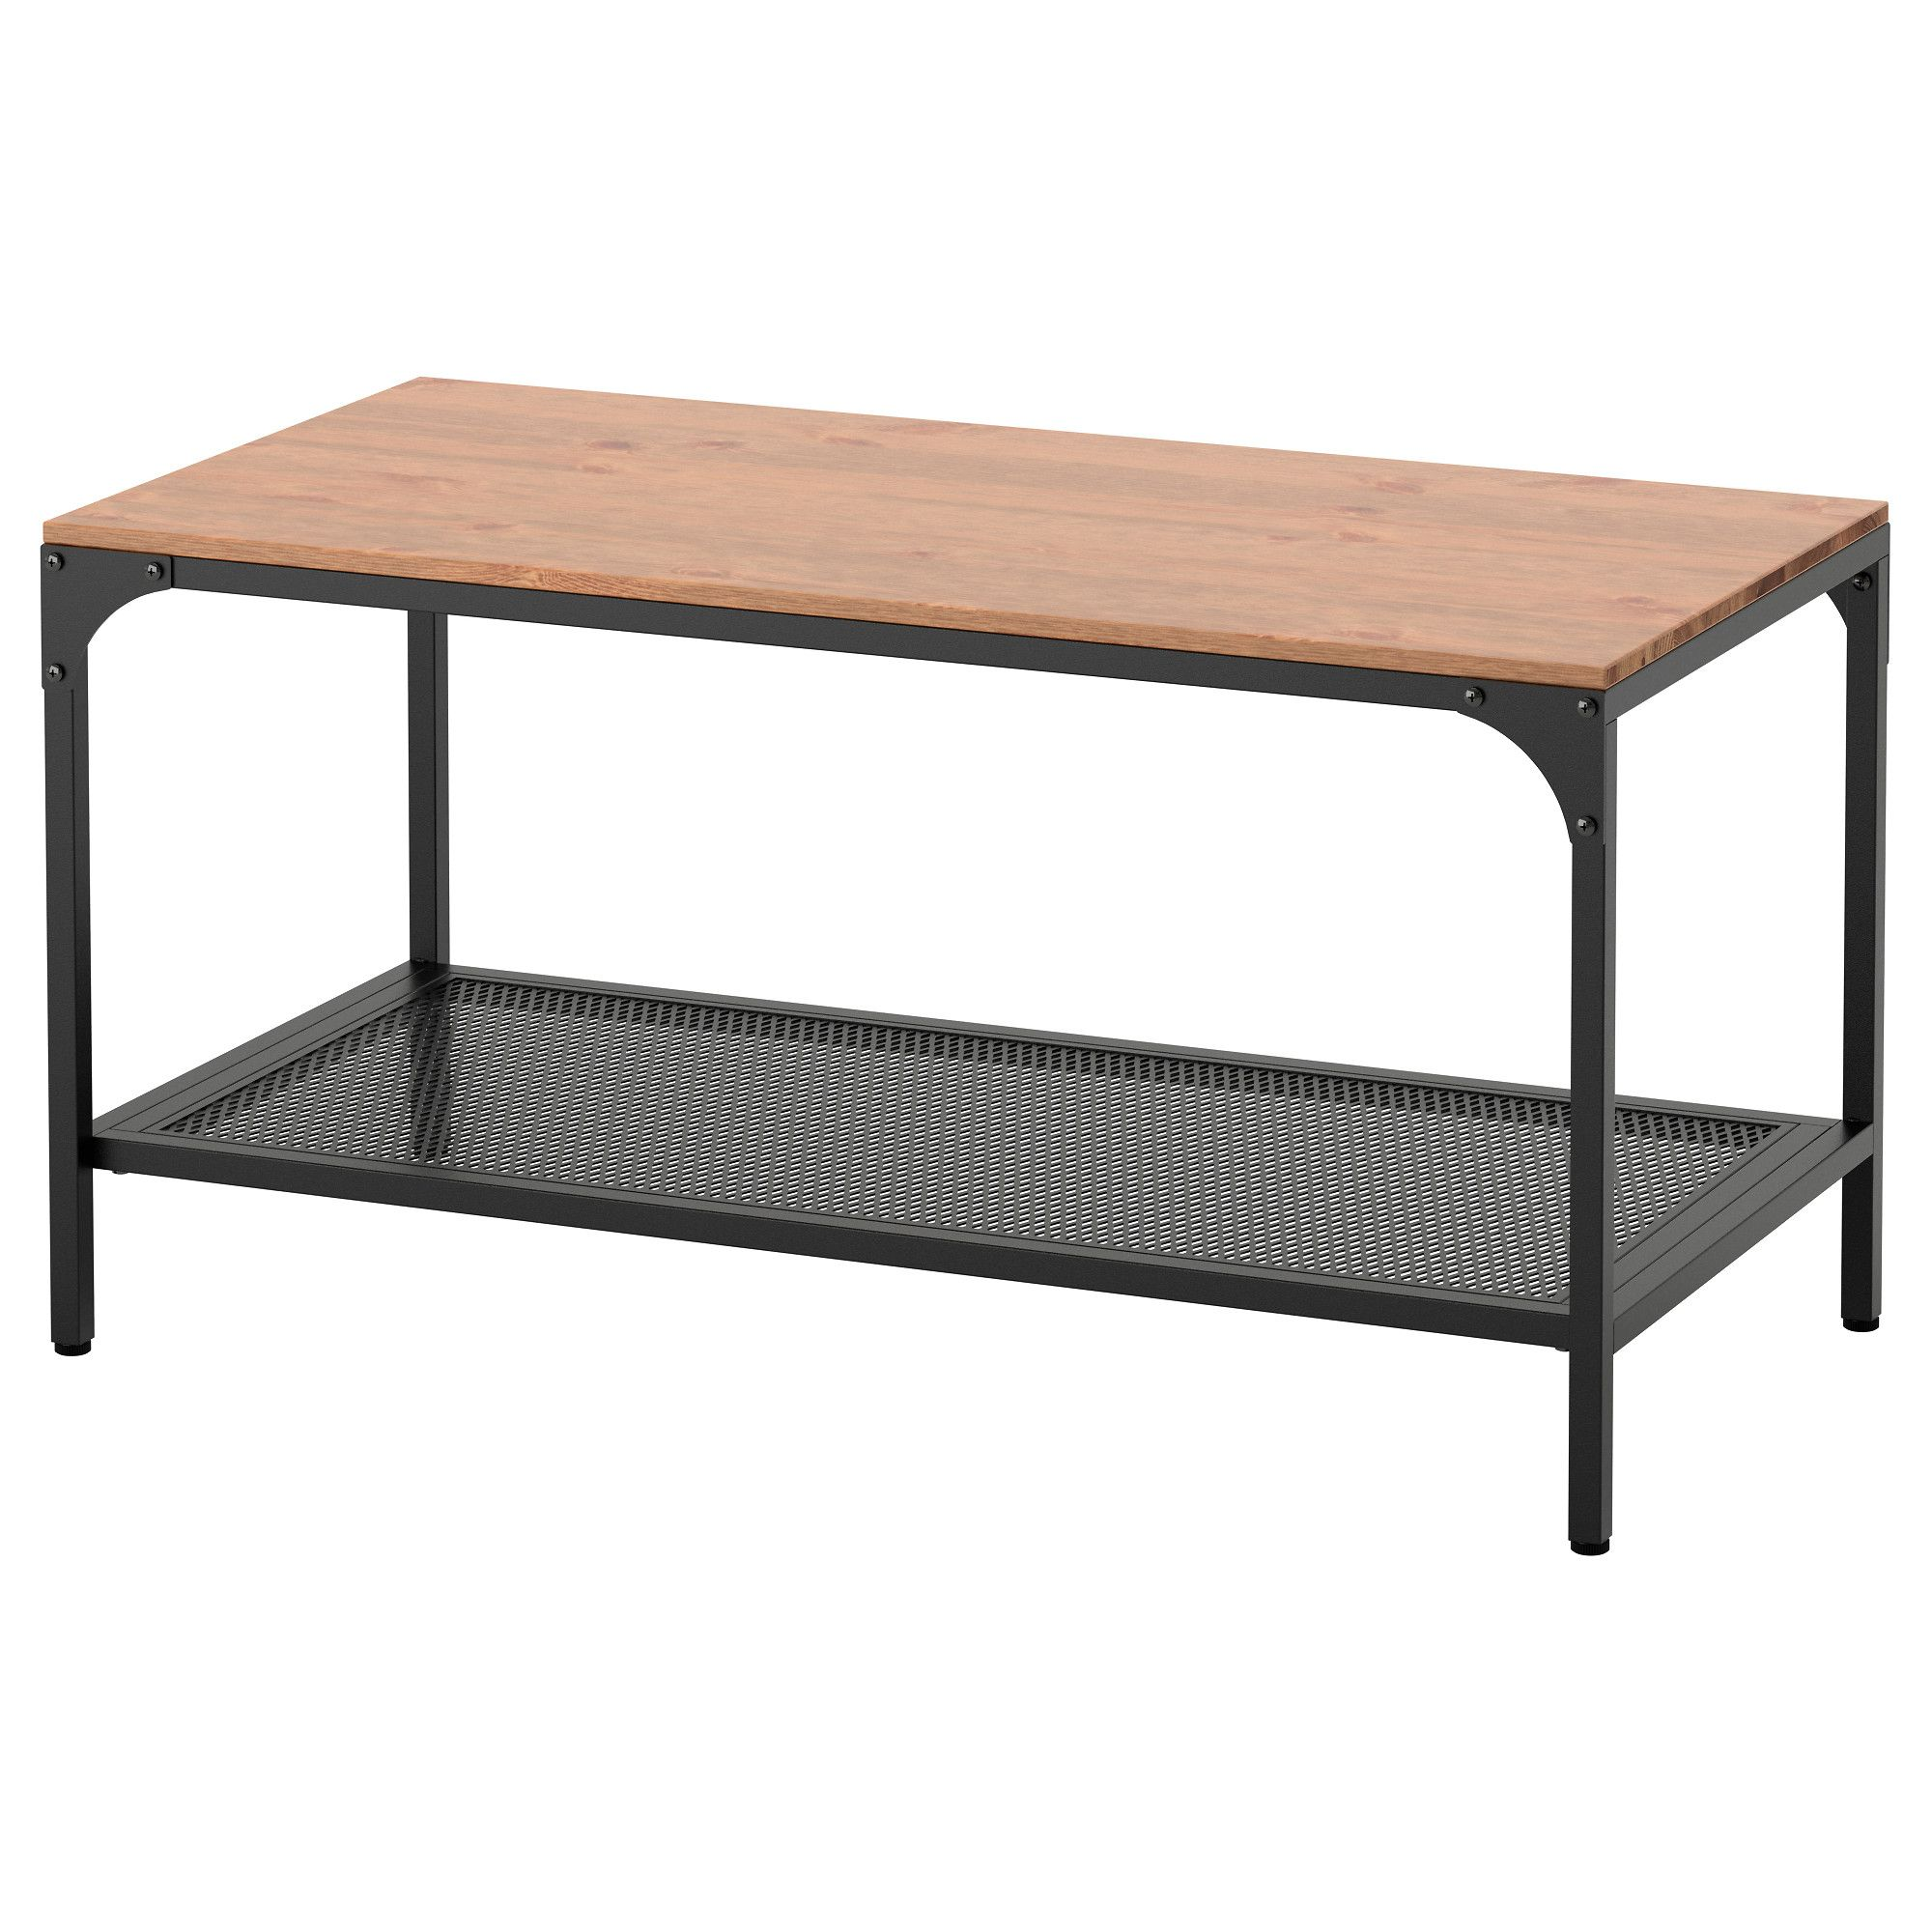 FJÄLLBO Coffee table Black 90x46 cm